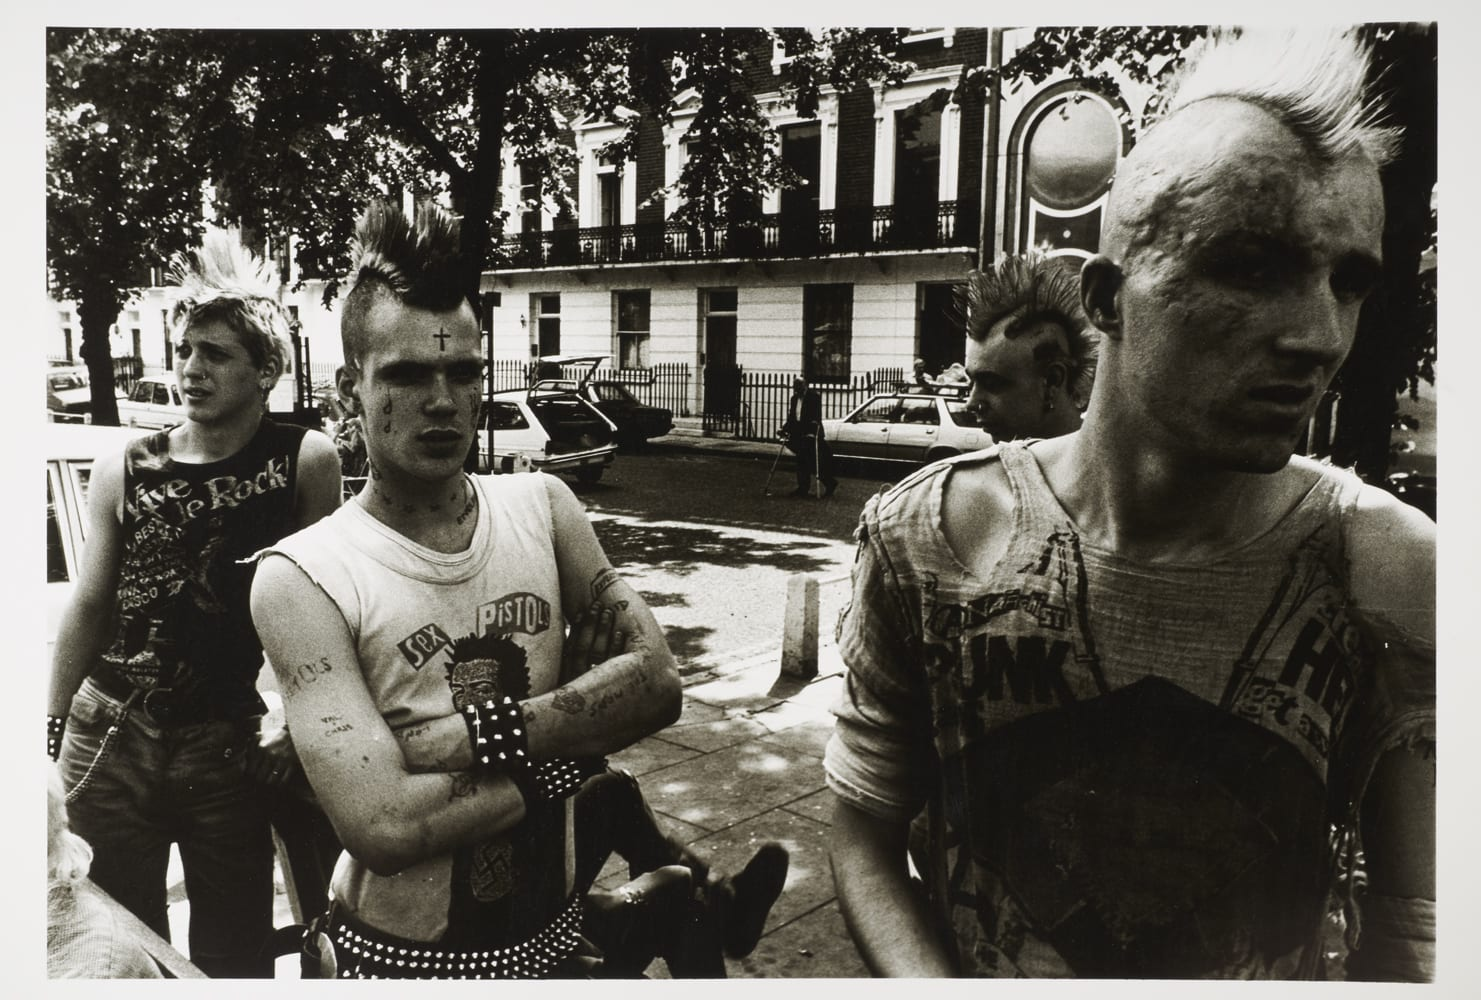 Stomping Ground London Subcultures In The 70s And 80s British Journal Of Photography